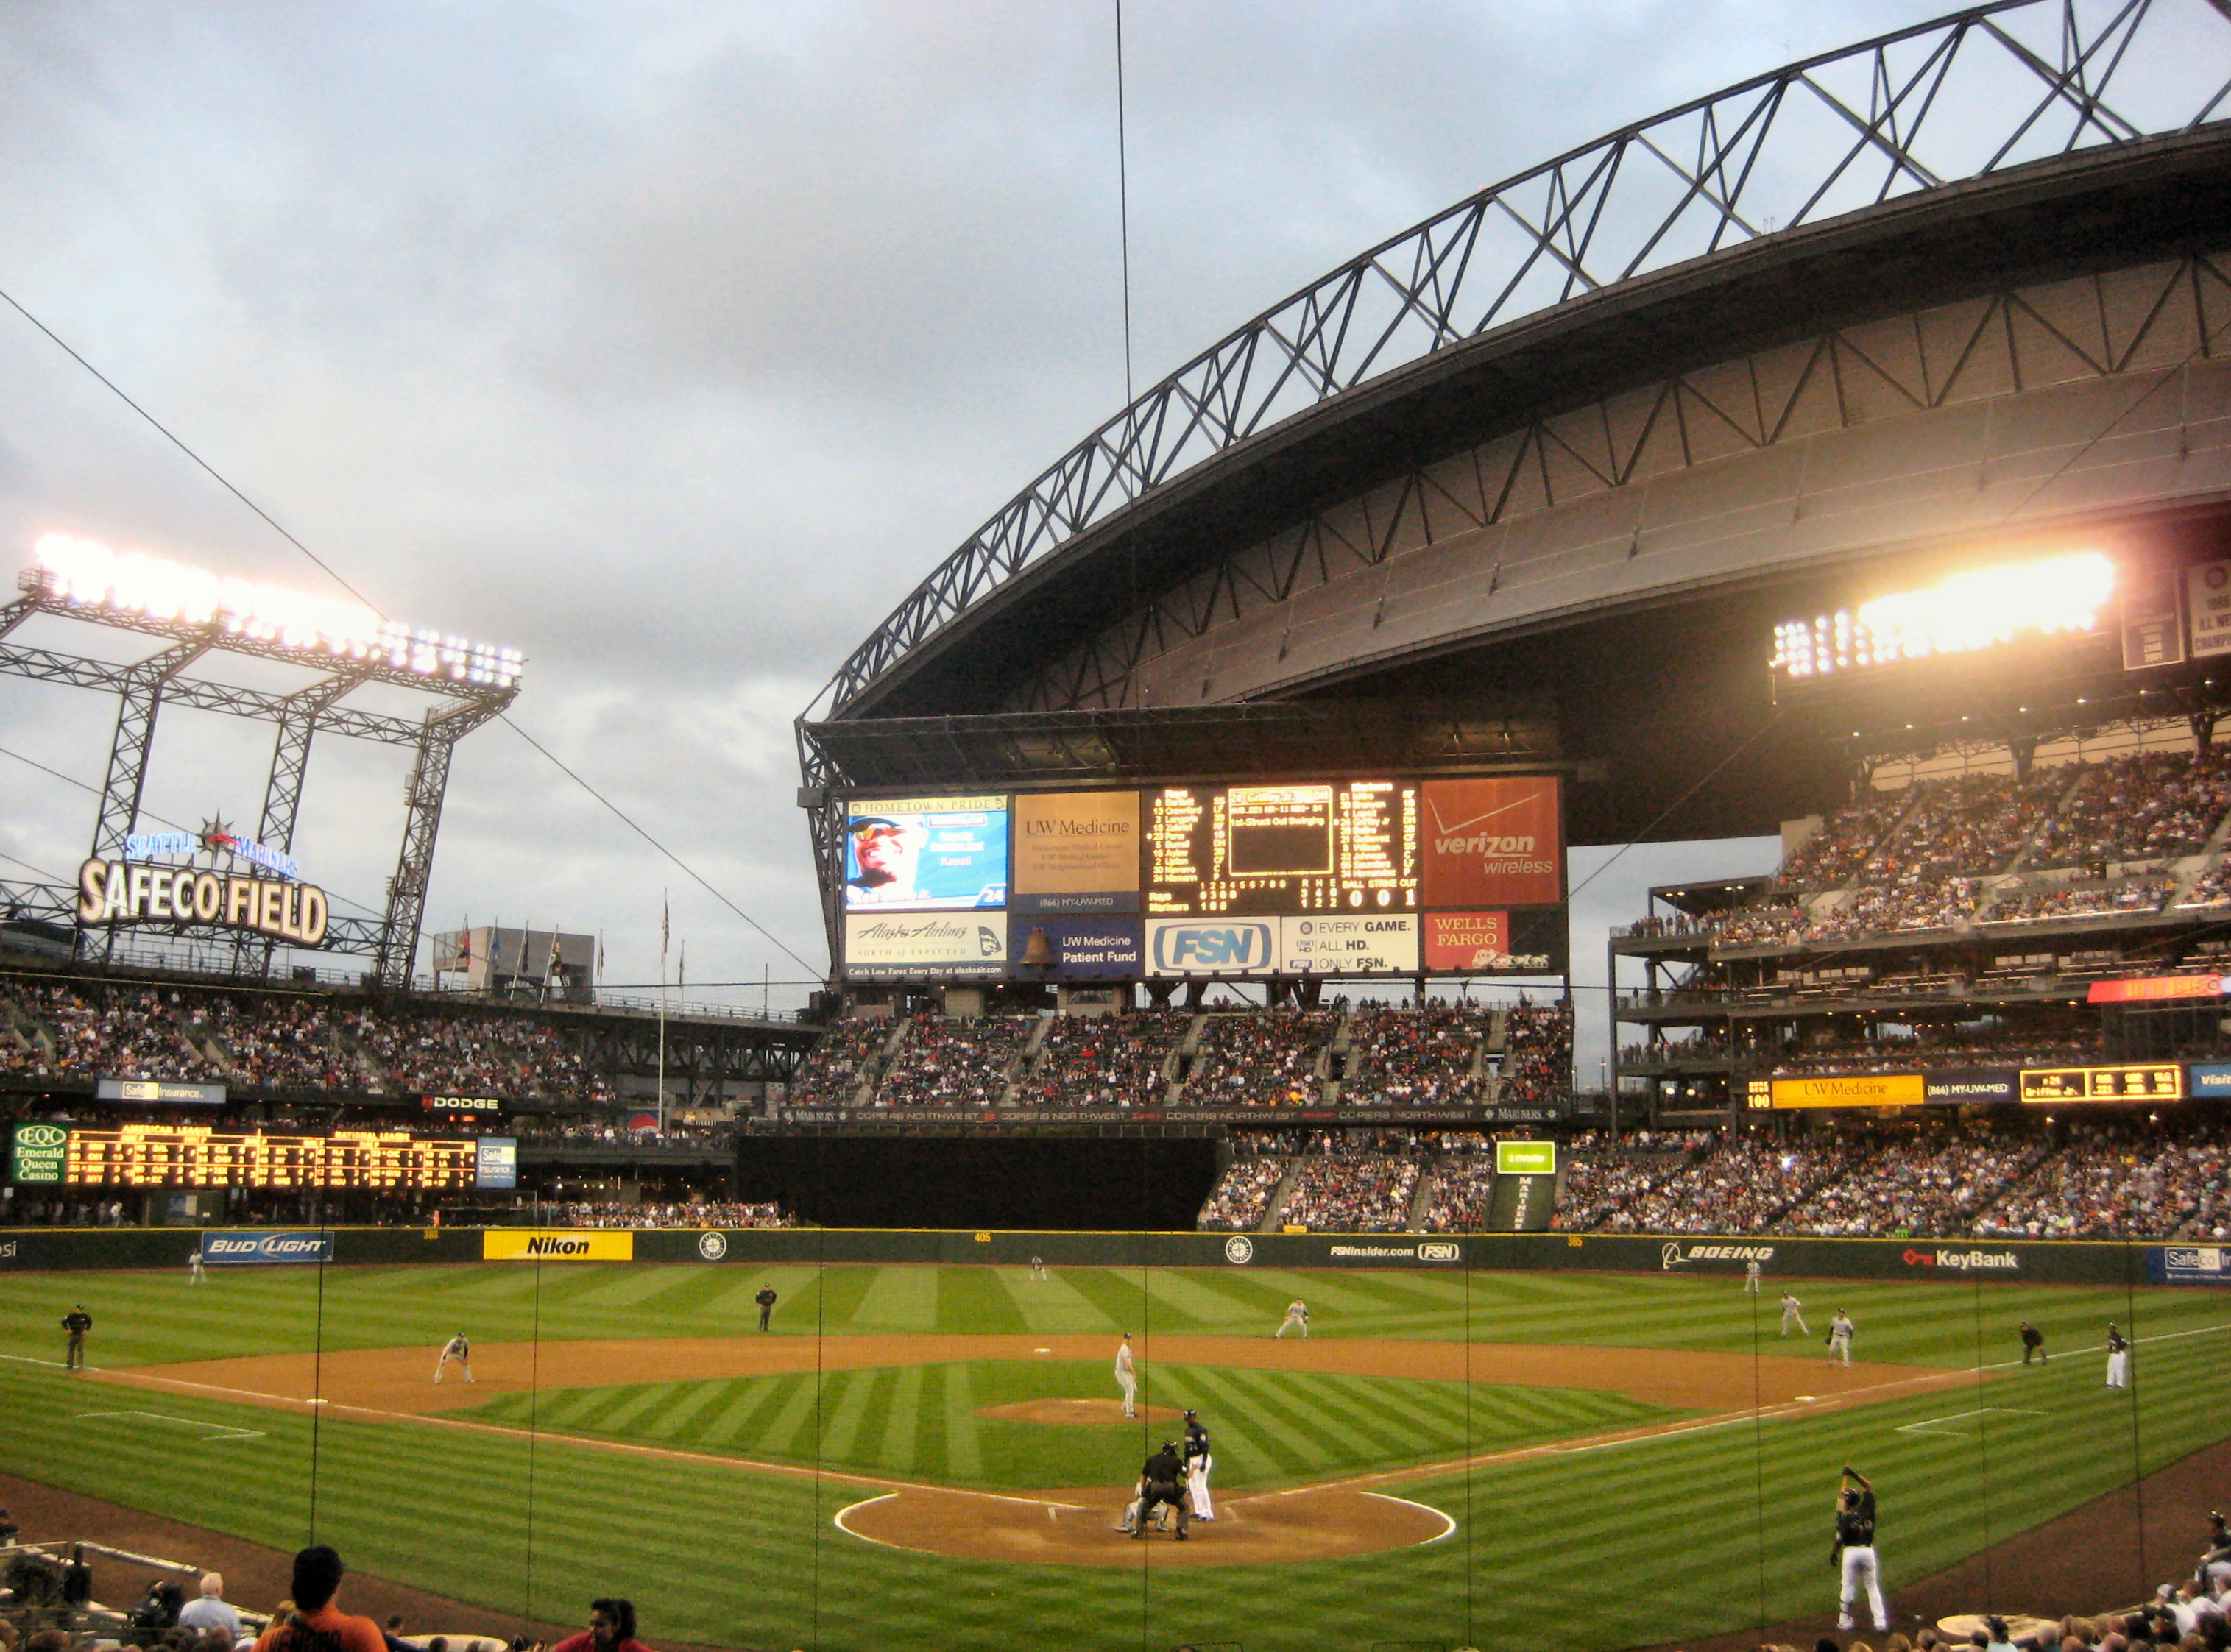 Safeco_Field._Against_Tampa_Bay_Rays,_with_Ken_Griffey_Jr._up_to_bat,_Seattle